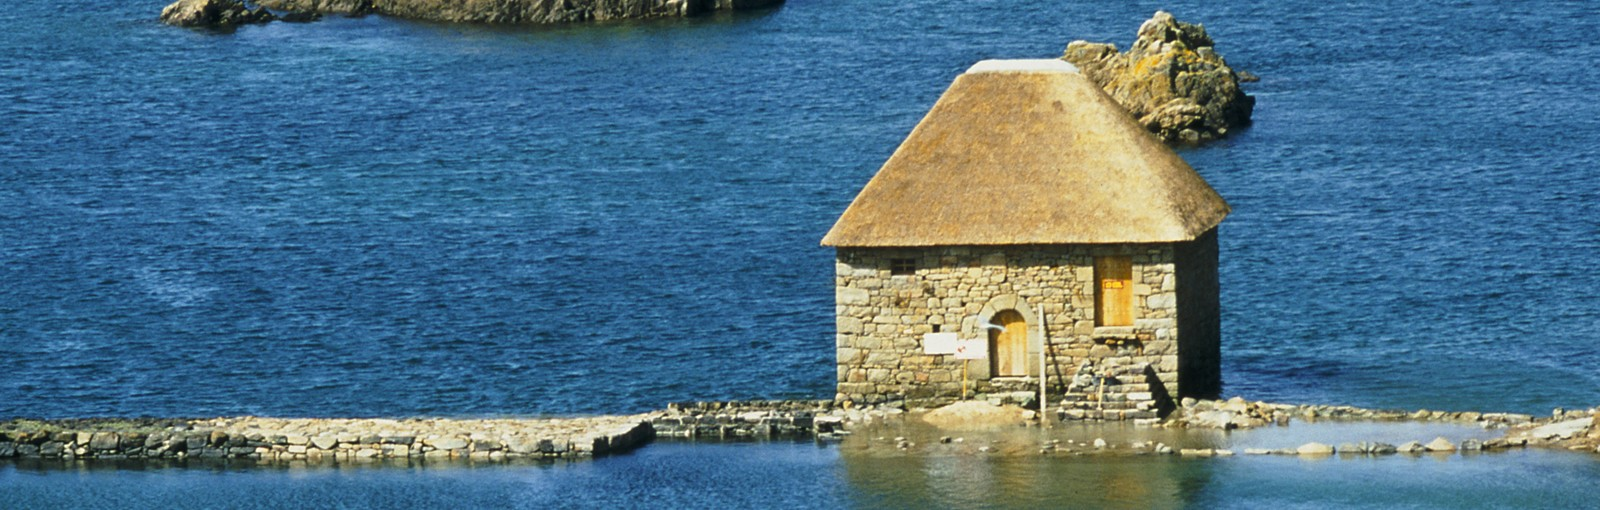 Tours Normandy - Brittany – Loire valley and Chartres - Multi-regional - Multiday tours from Paris